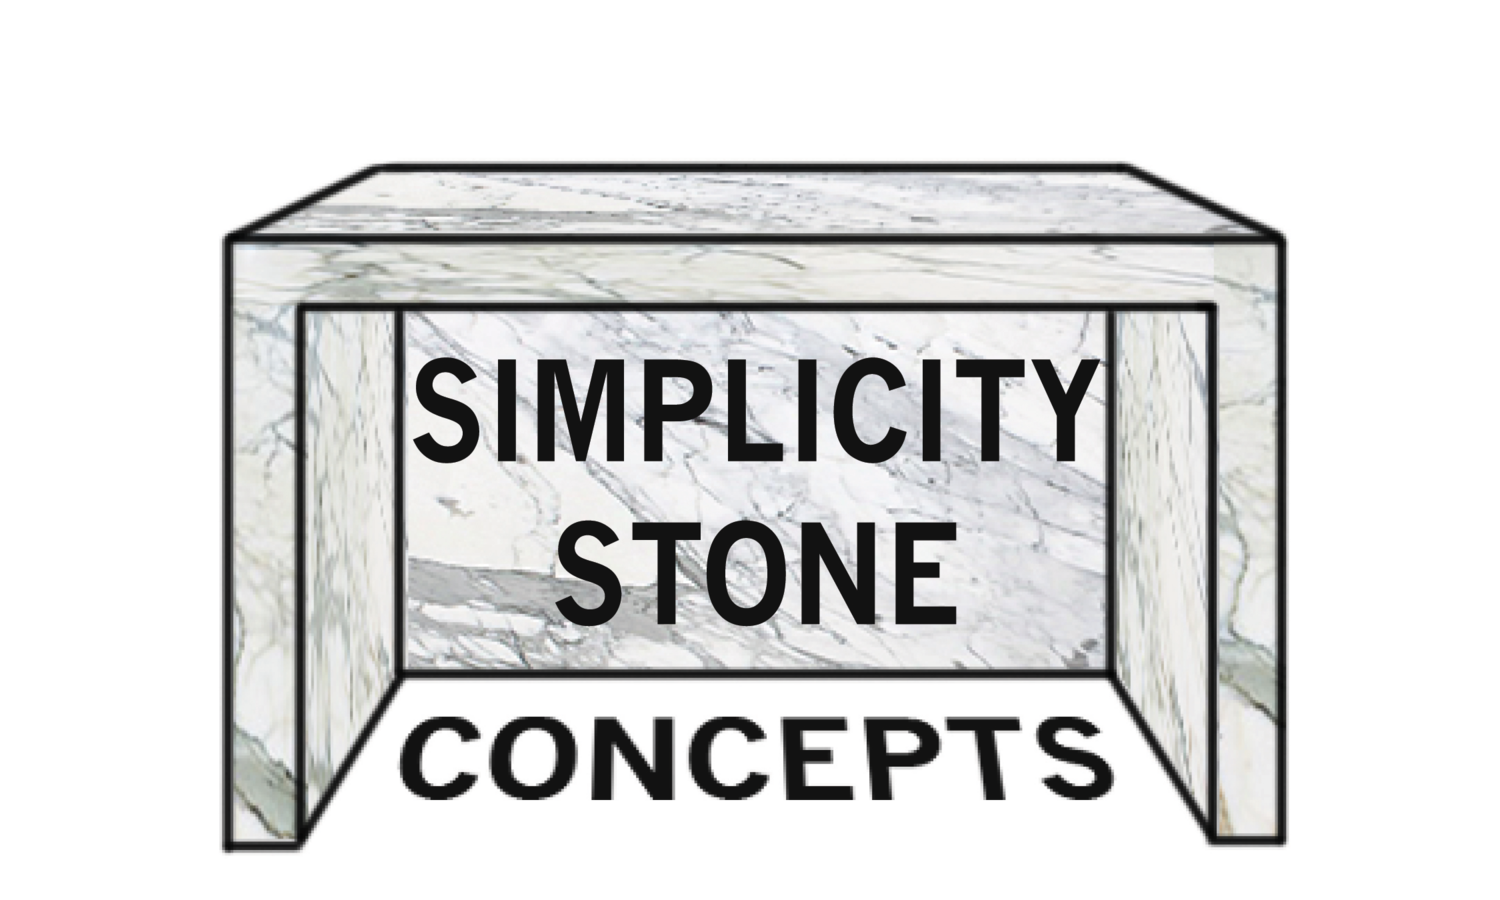 Simplicity Stone Concepts